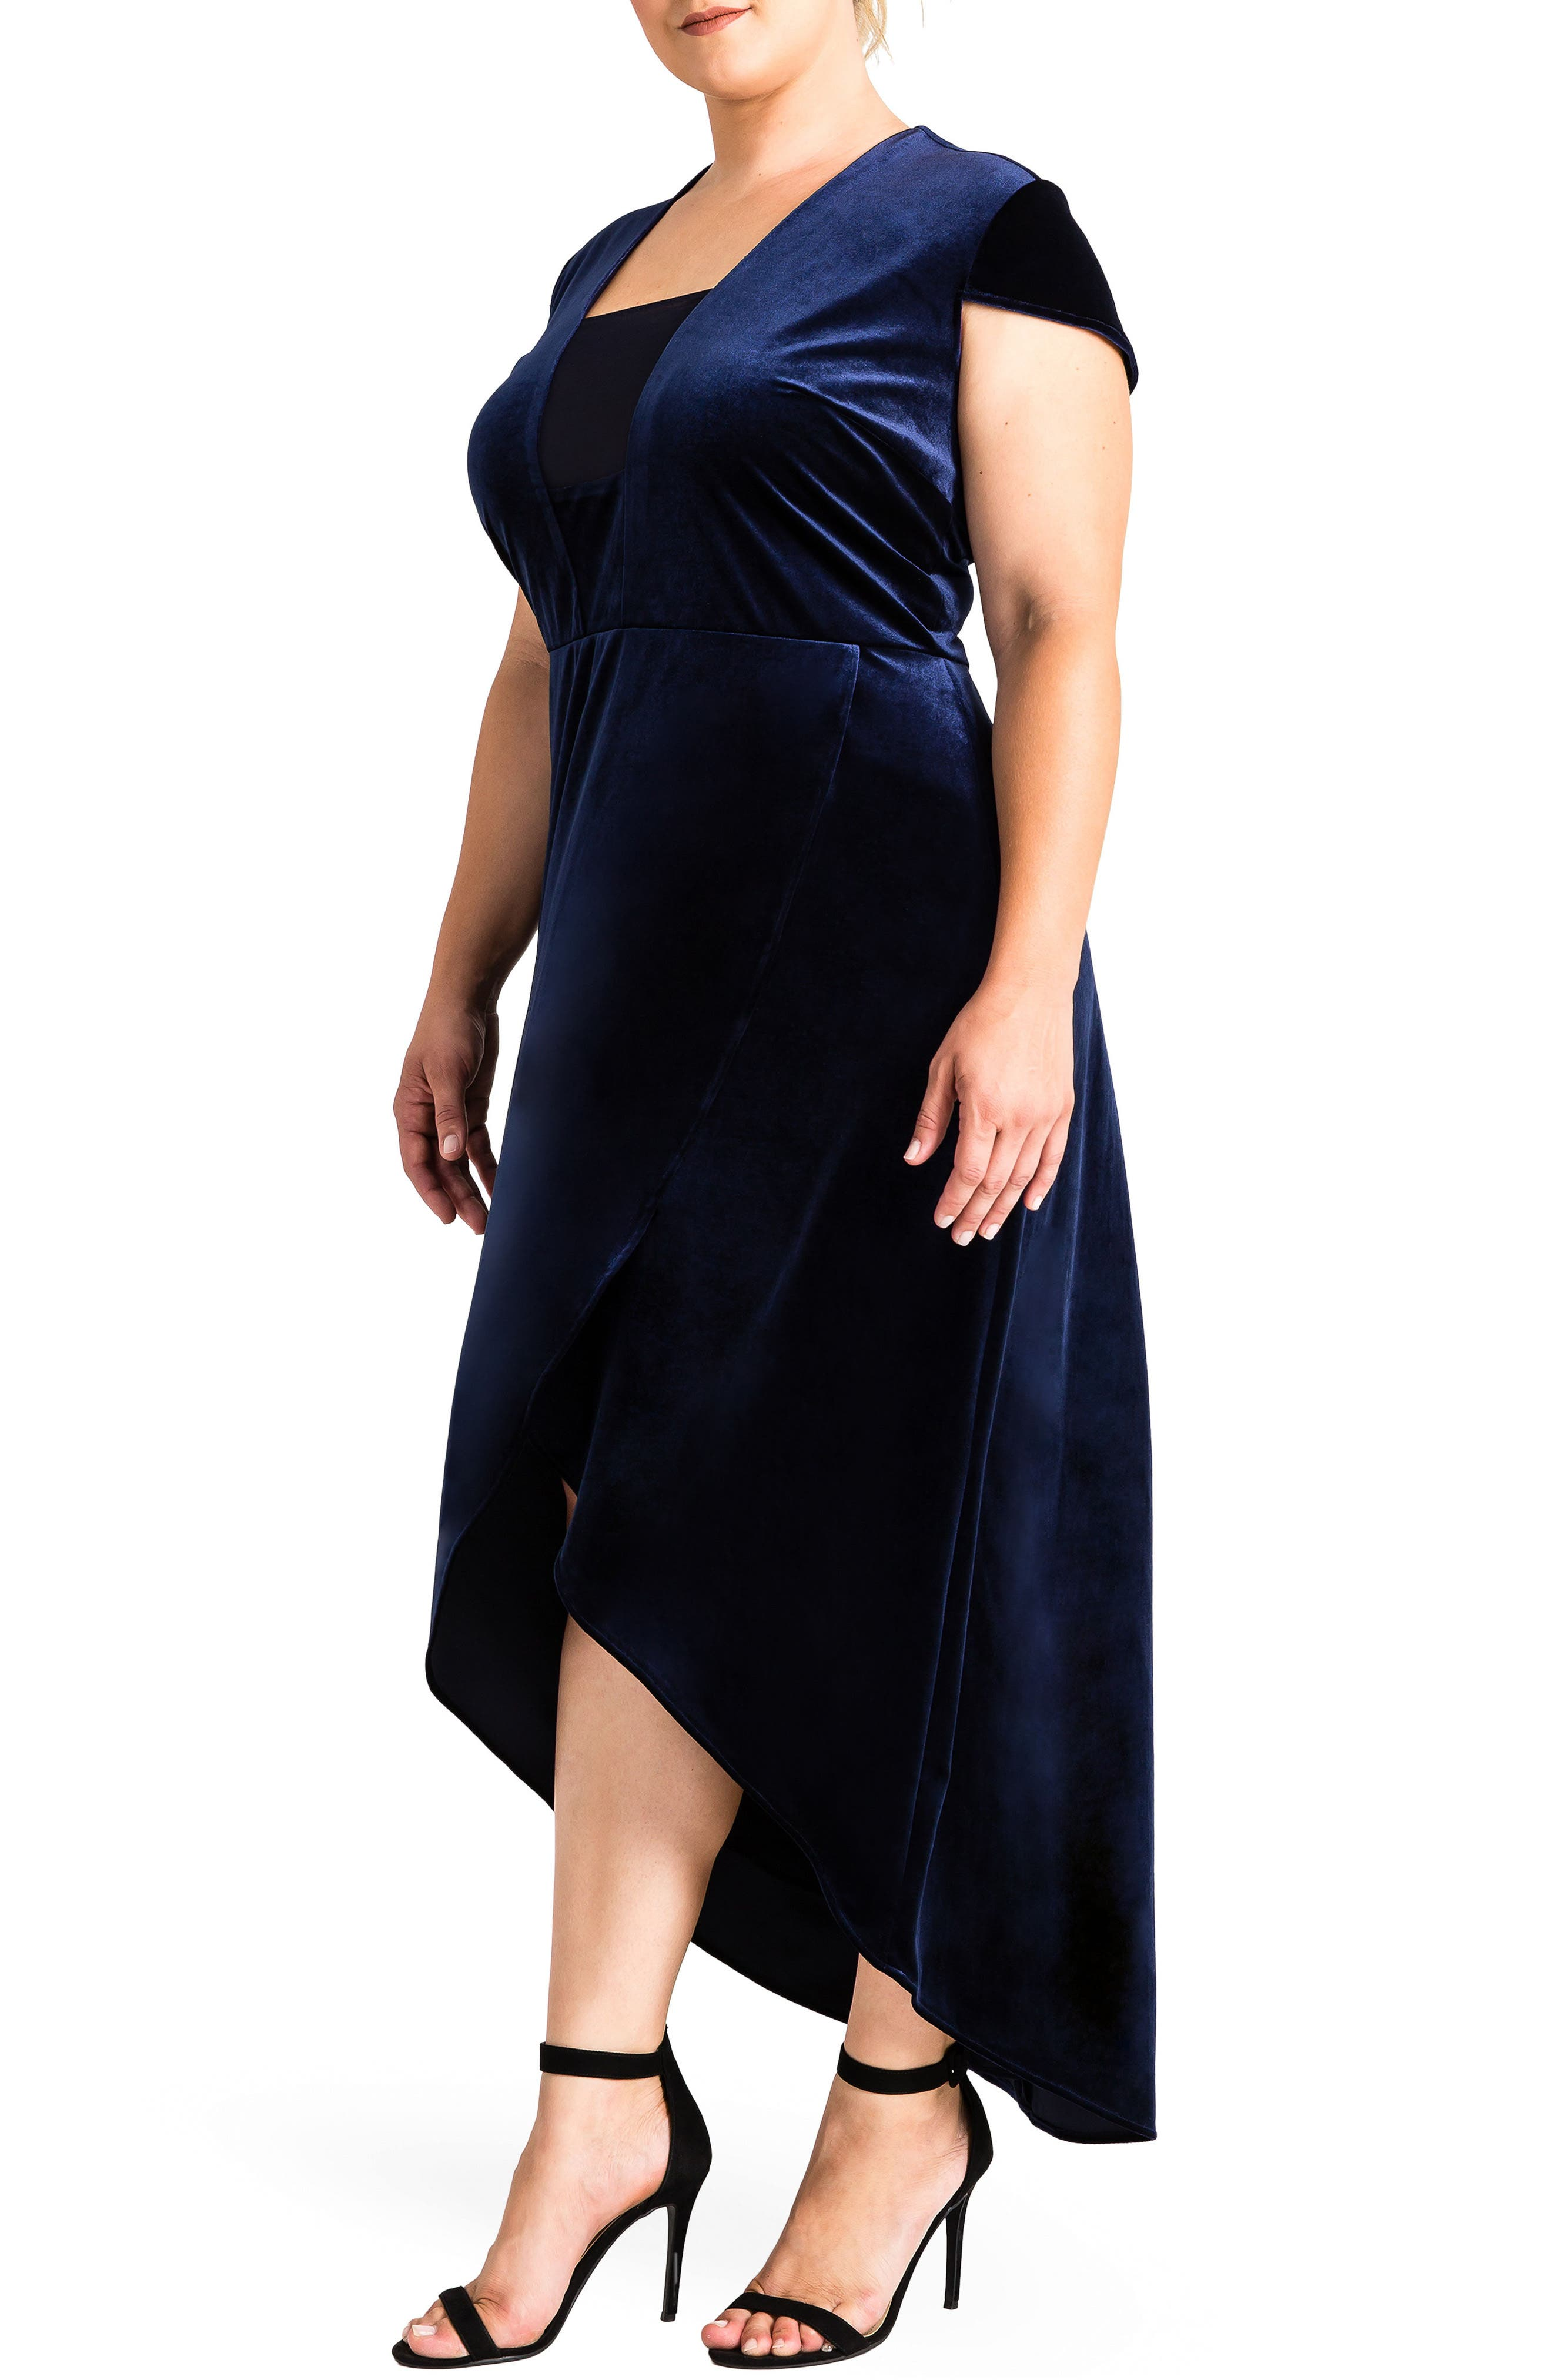 Luna Velvet Dress,                             Alternate thumbnail 3, color,                             410